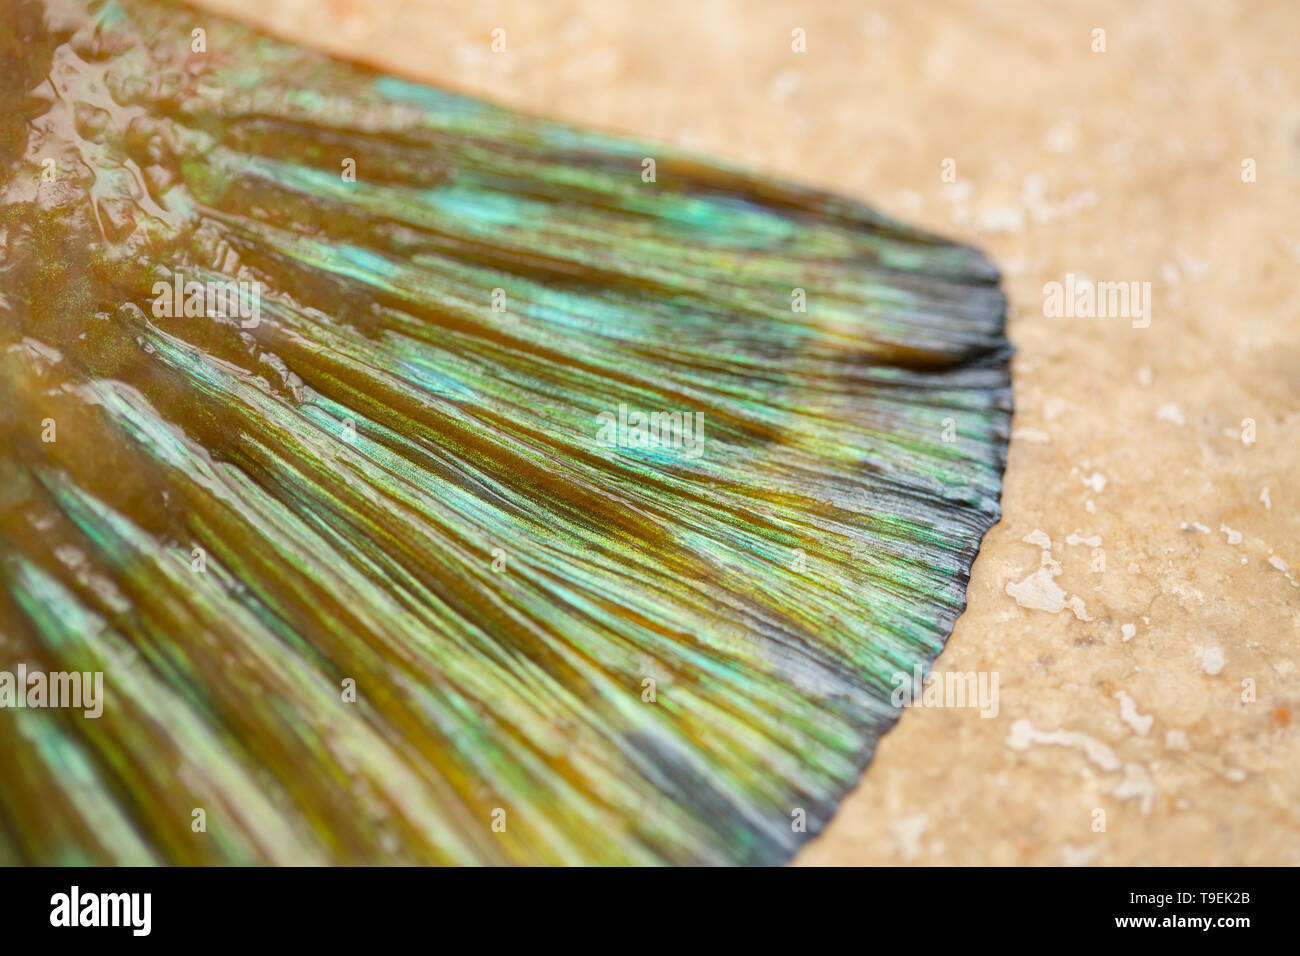 The colourful tail fin, or caudal fin,  of a raw, uncooked ballan wrasse, Labrus bergylta, that was caught on rod and line while boat fishing in the E - Stock Image